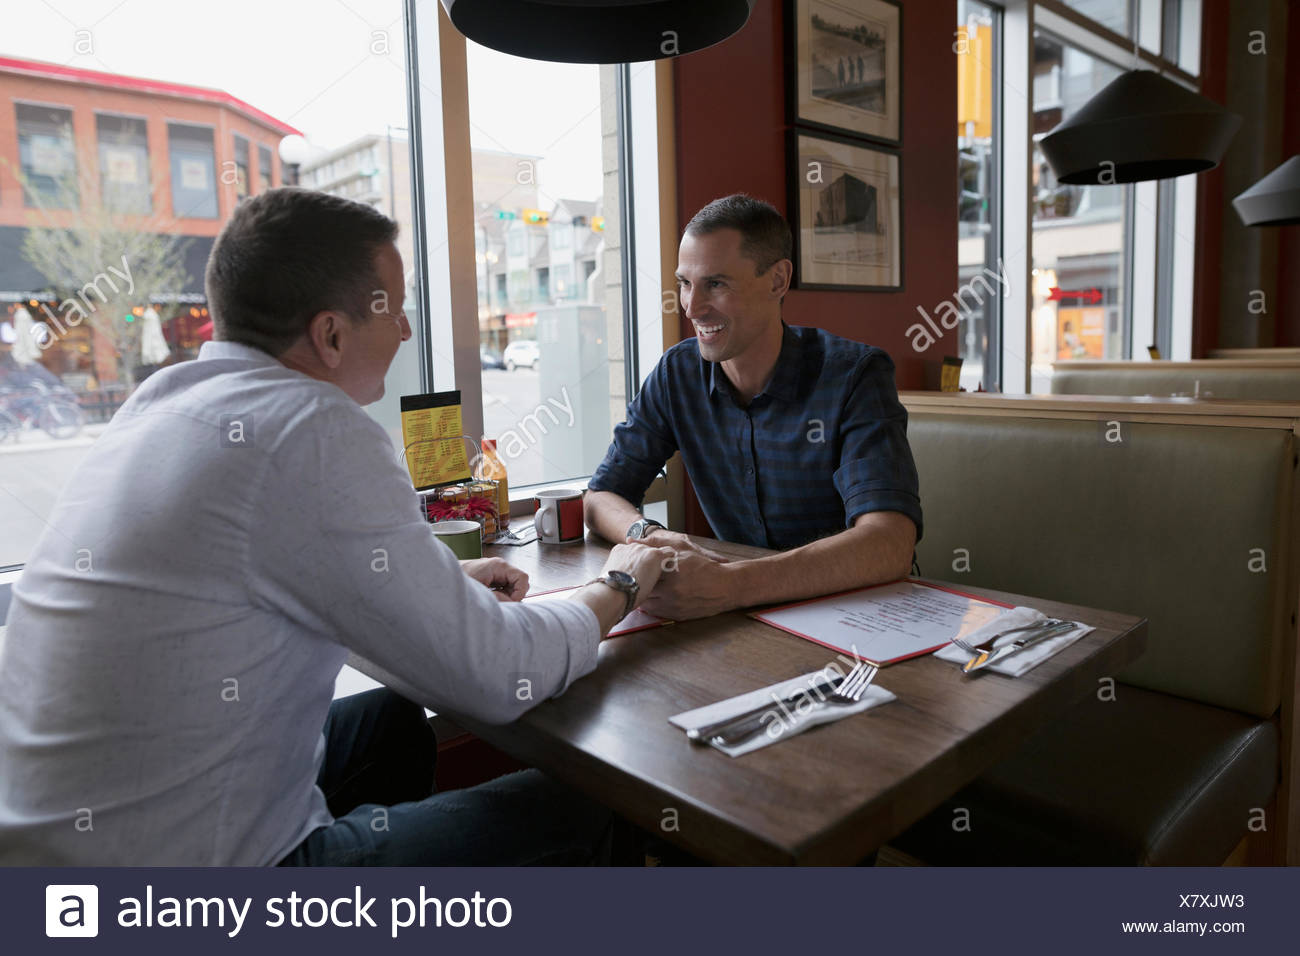 Affectionate male gay couple holding hands at diner booth - Stock Image